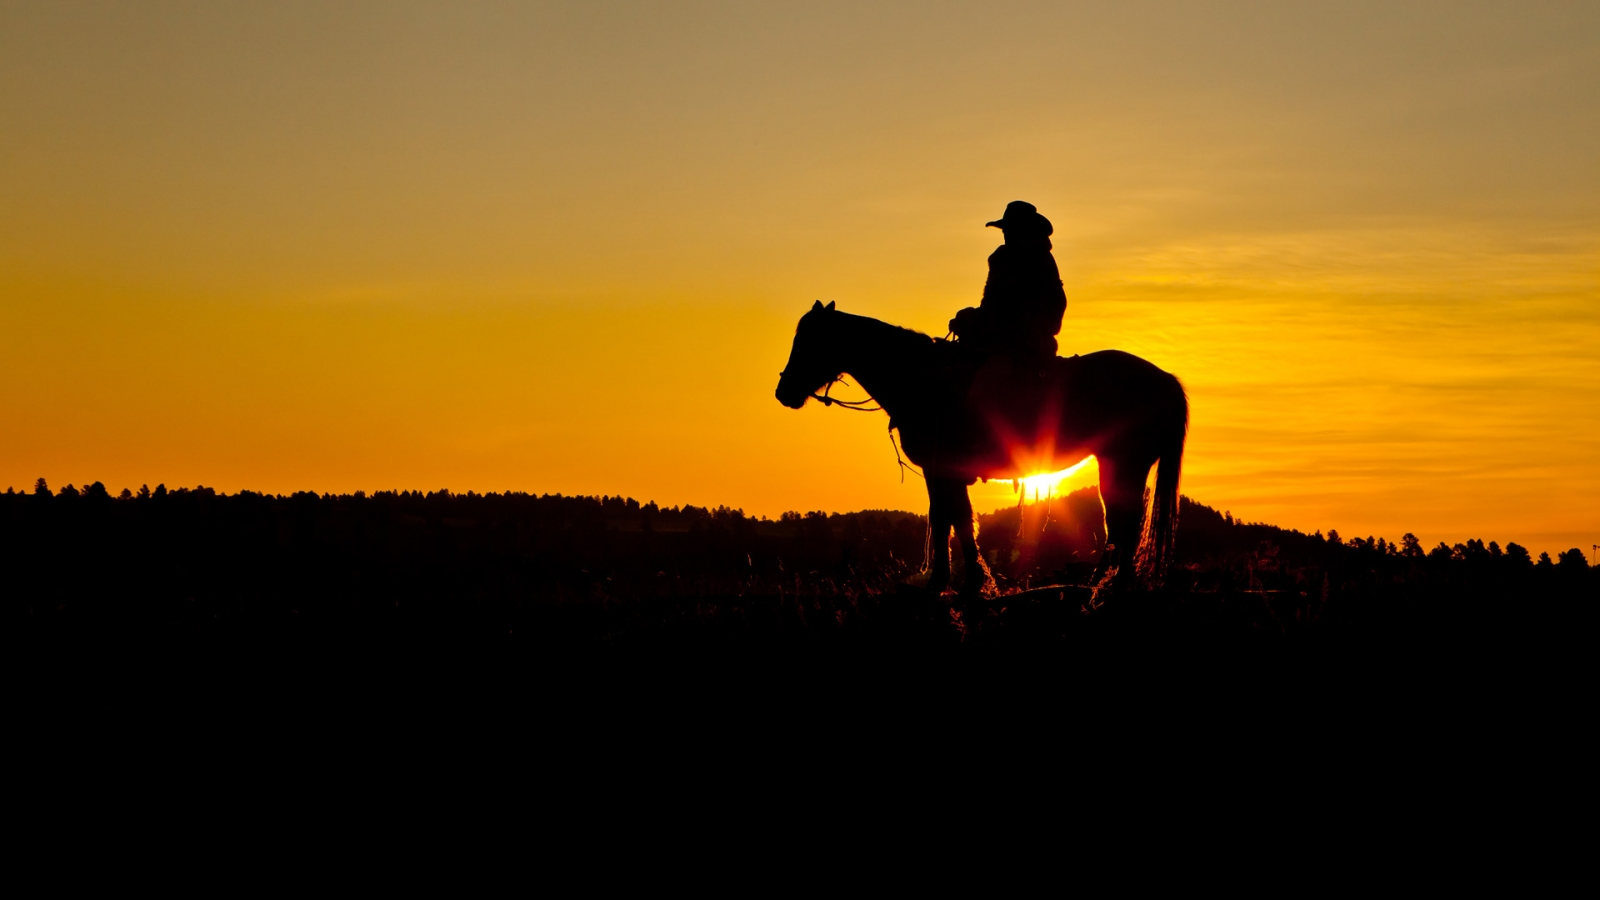 Cowboy 1600x900 Wallpapers, 1600x900 Wallpapers & Pictures Free ...